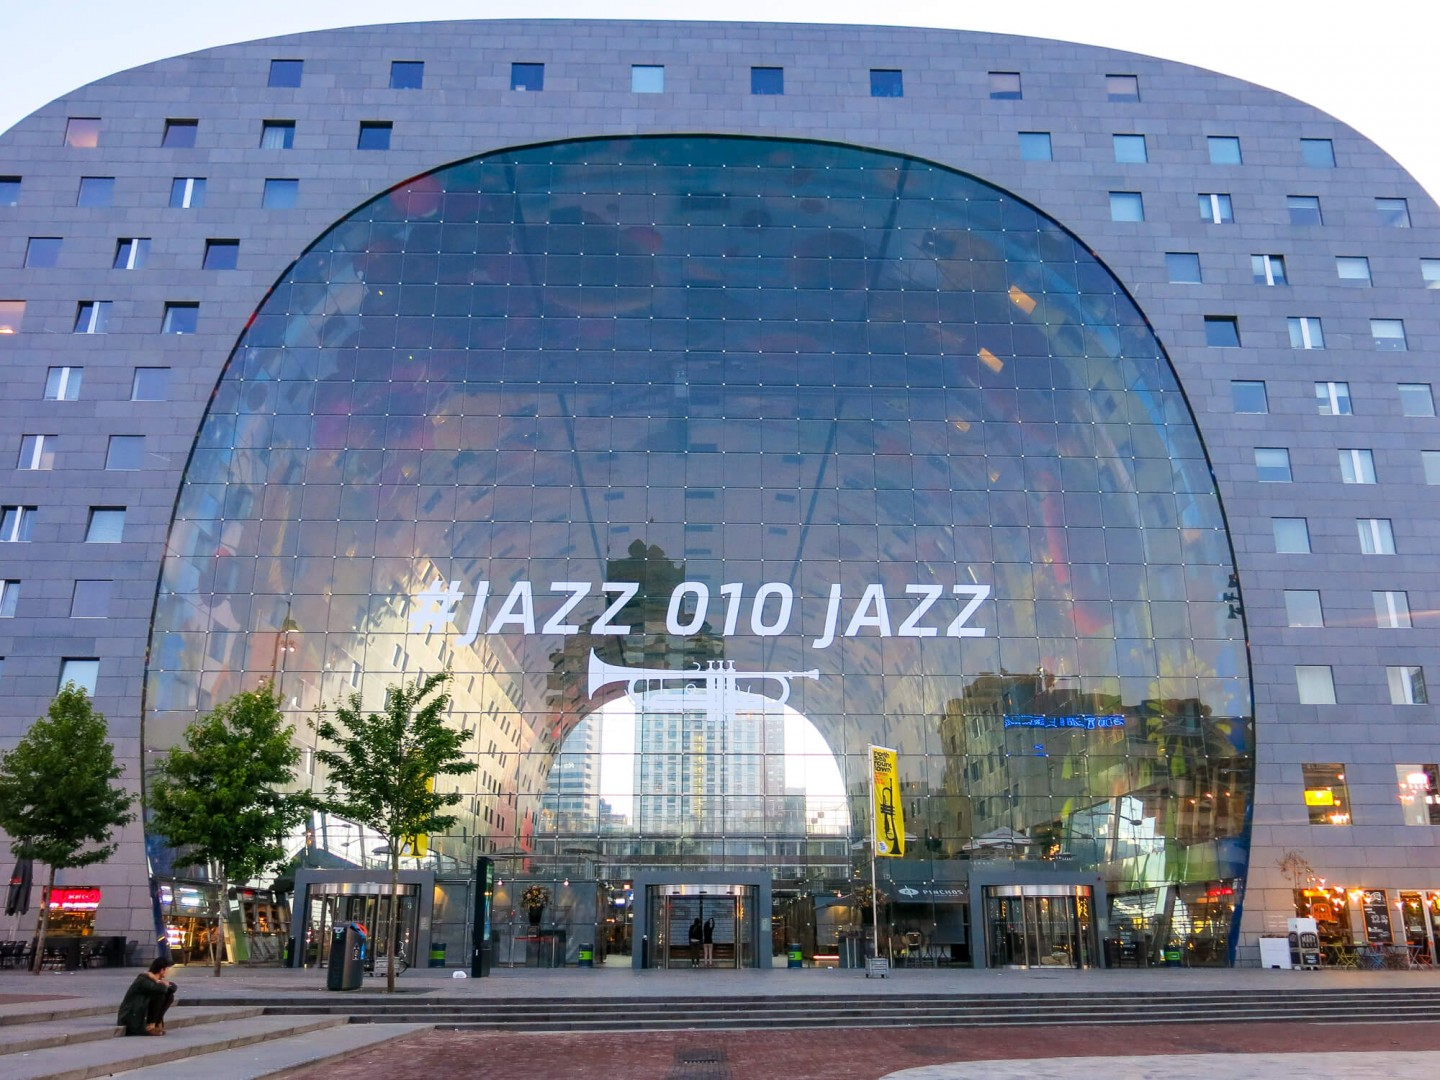 The Markthal in Rotterdam is a massive market hall with food stalls, restaurants and a supermarket. It also has apartments that have windows down into the market. It's a wonderful building!